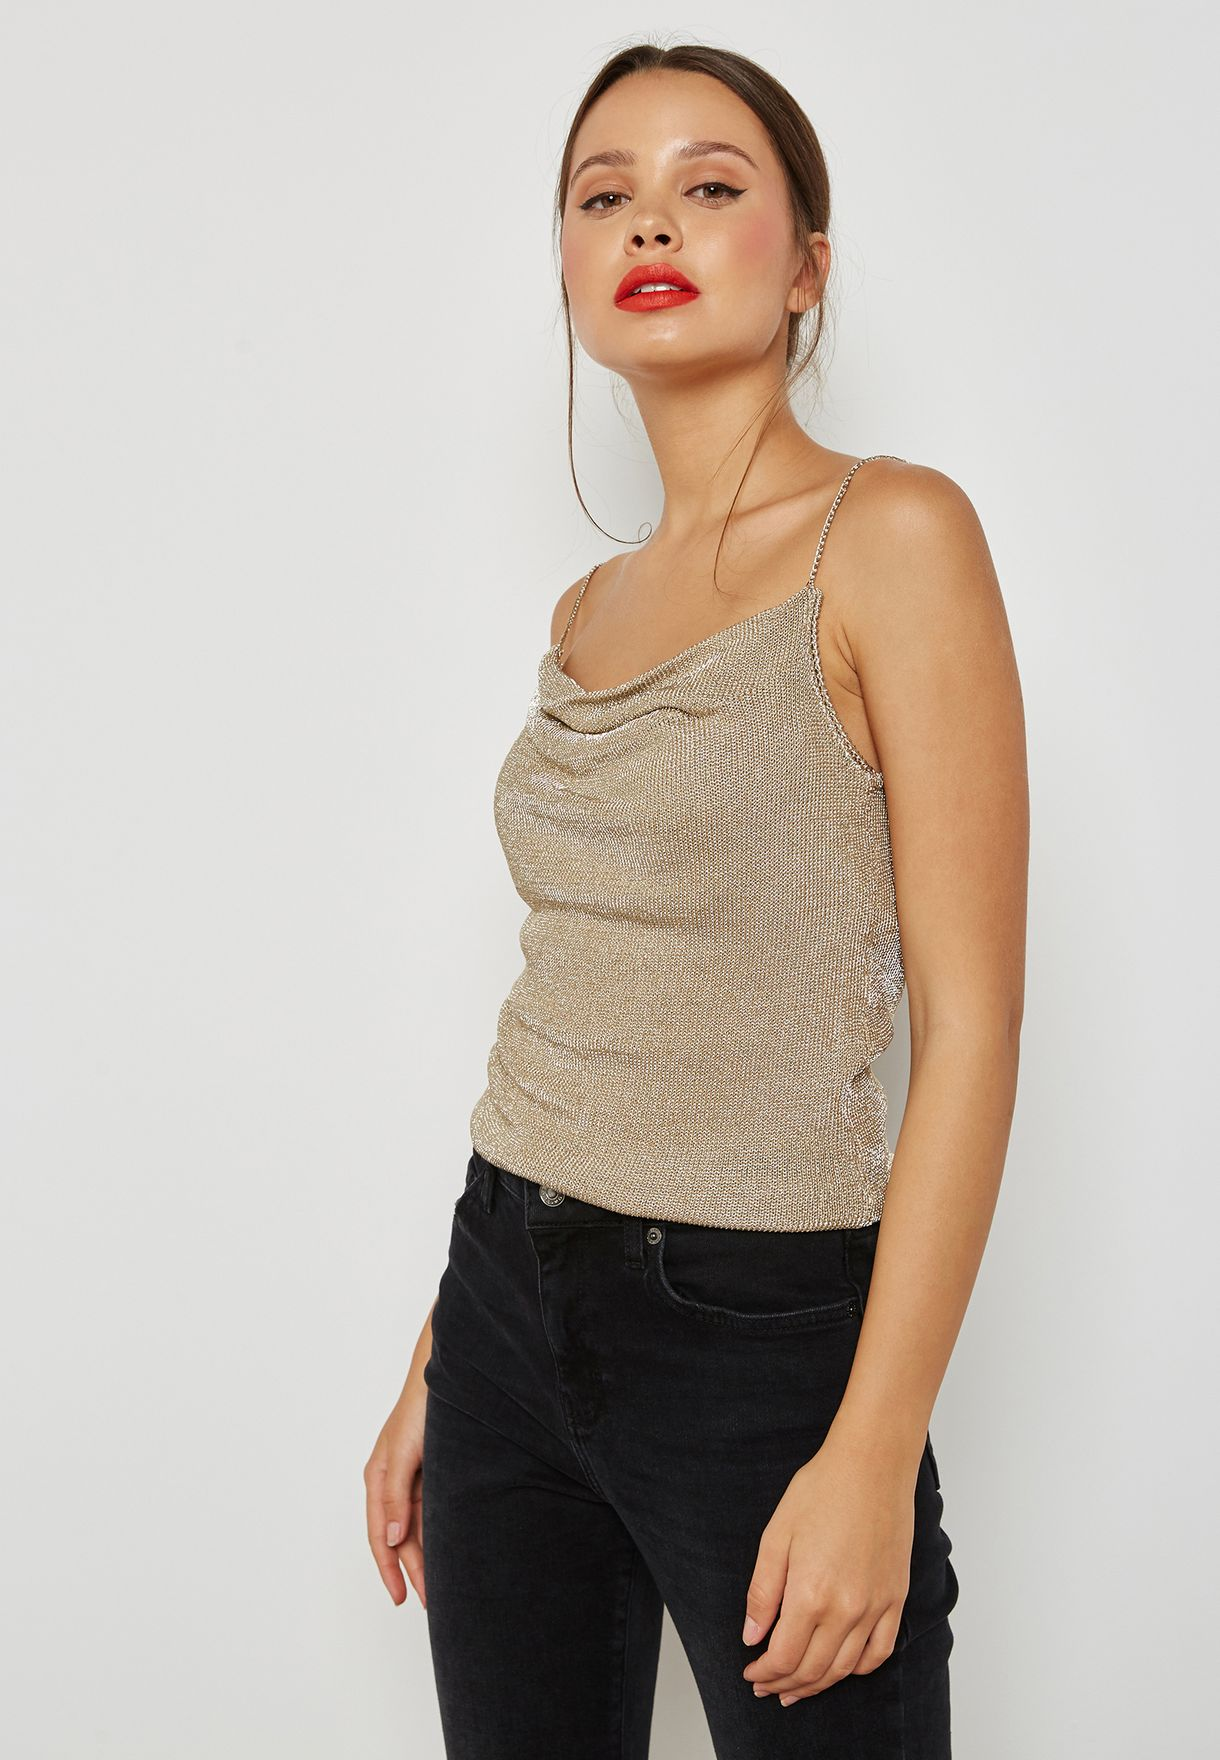 806c8c33e0f8b Shop Topshop gold Shimmer Cowl Neck Cami Top 23W01NGLD for Women in ...